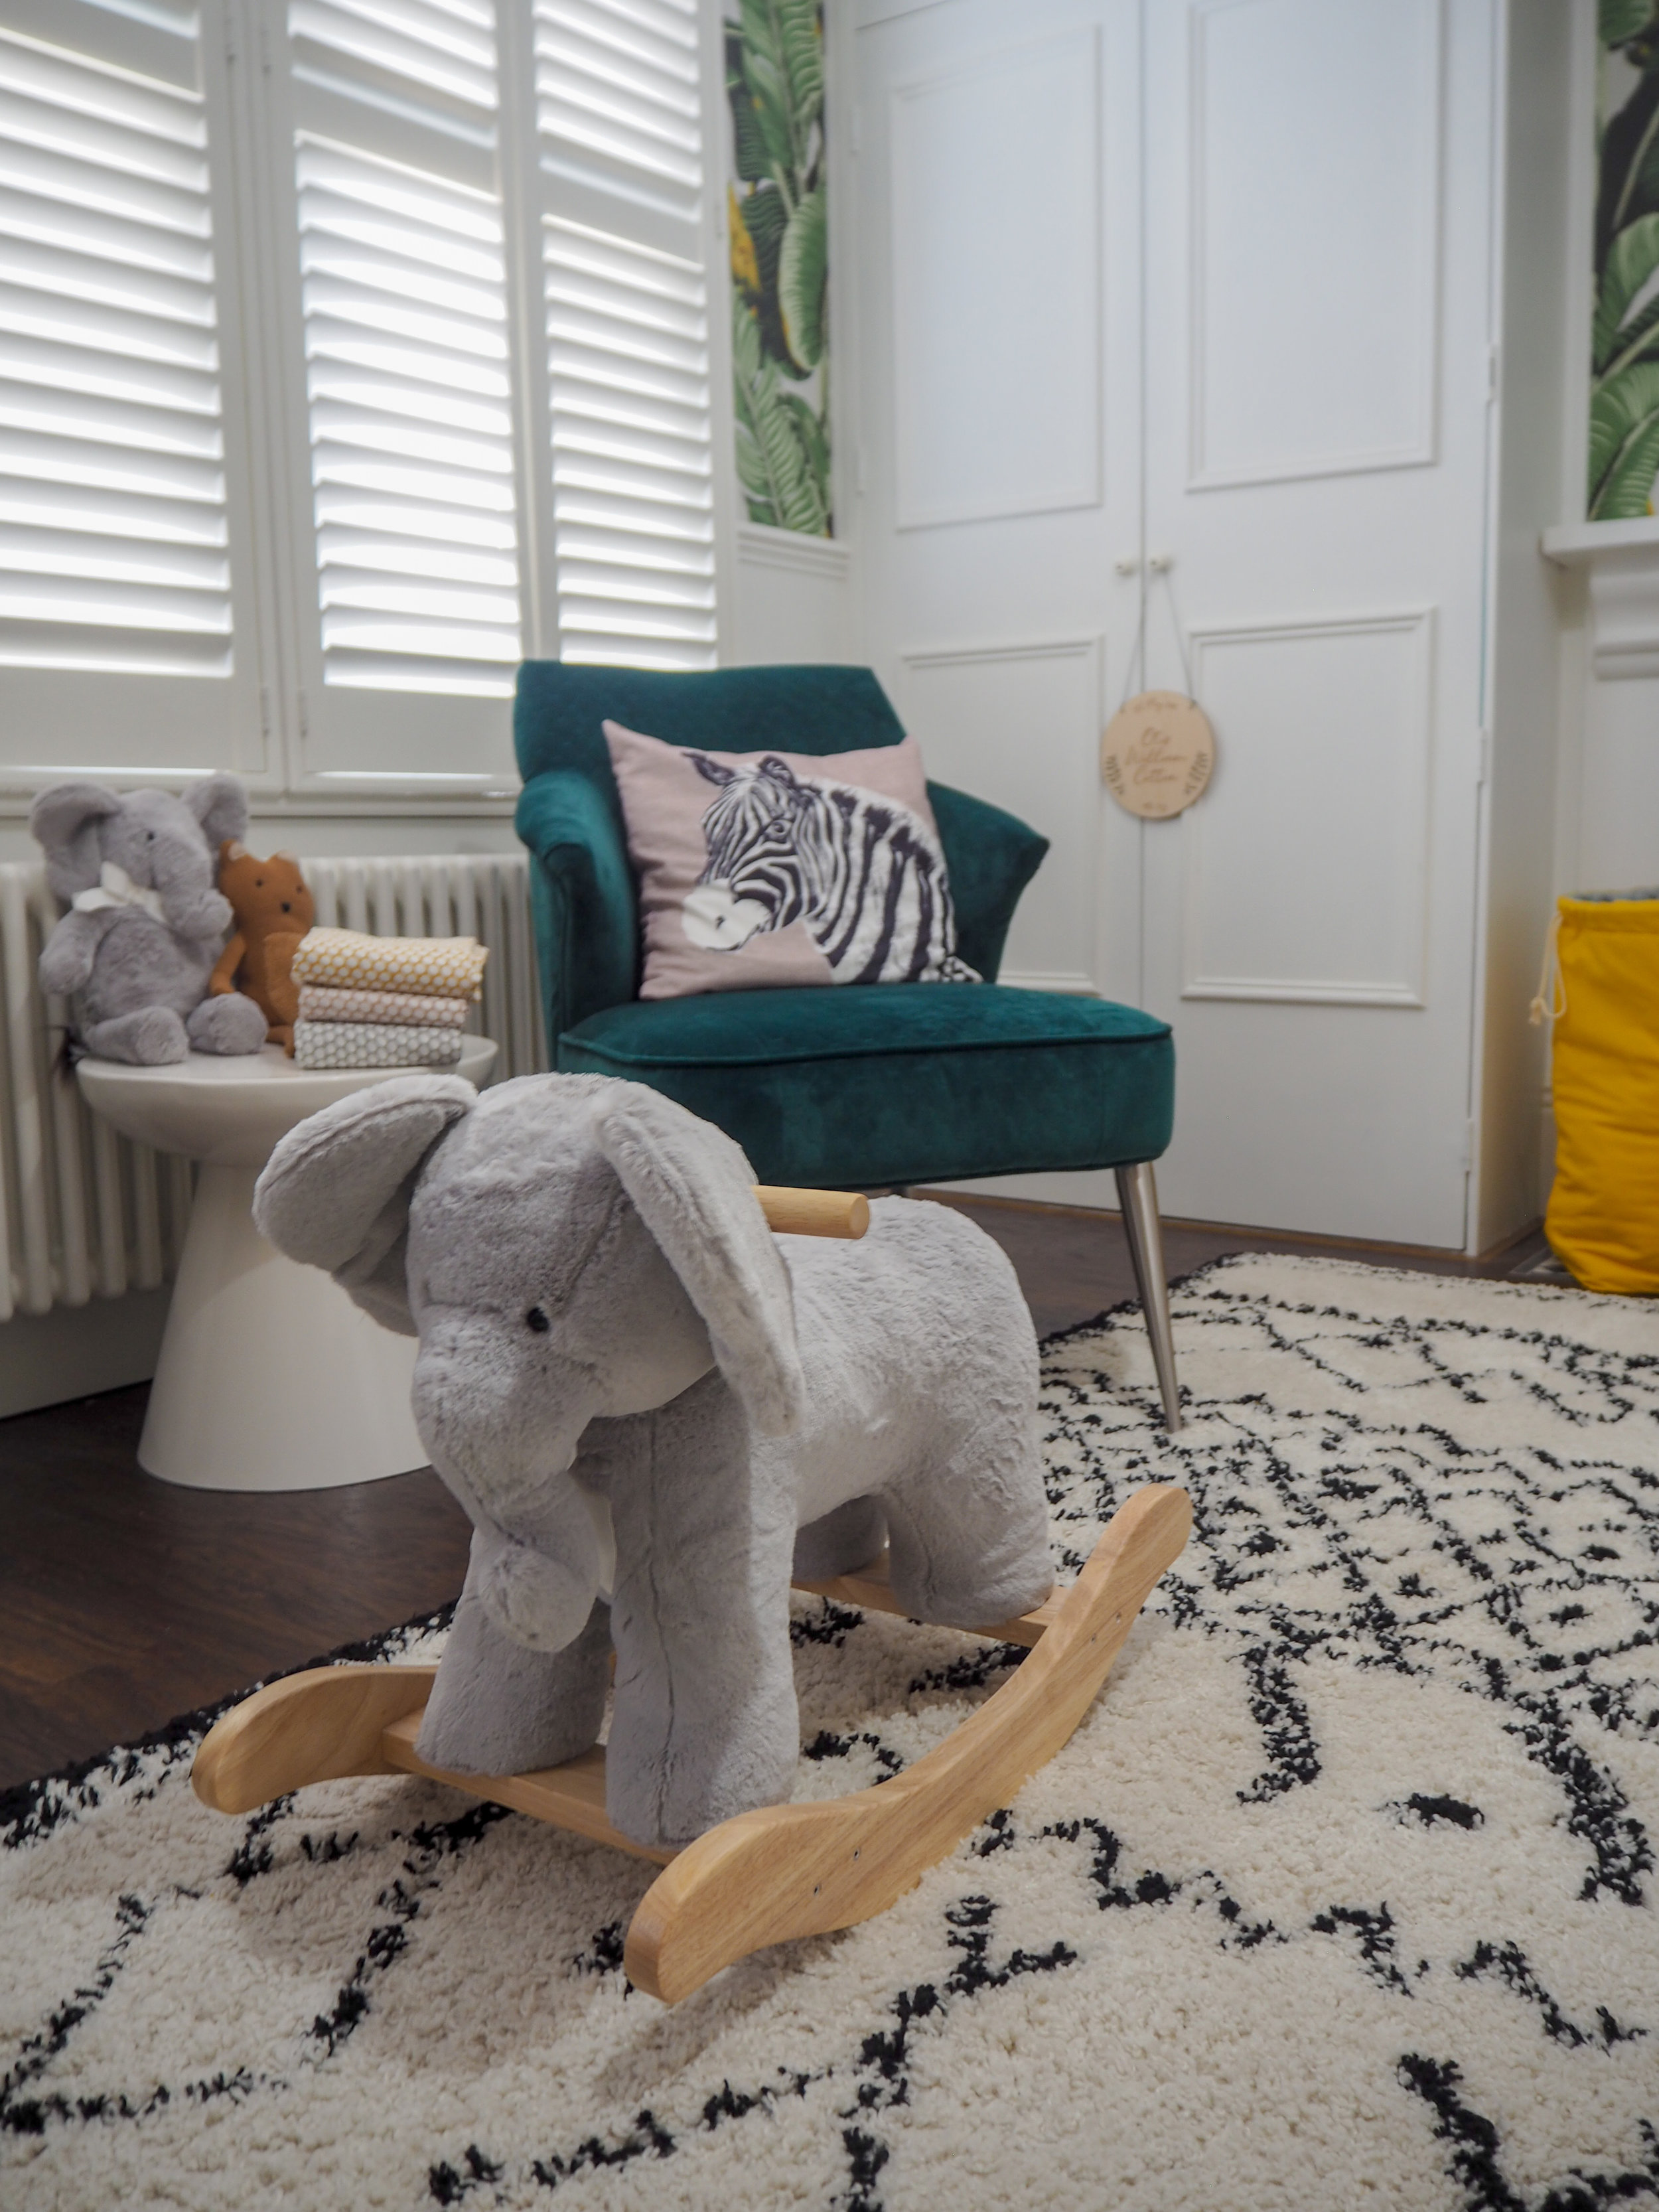 Elephant plush rocker   £149 from Pottery barn kids;   Afaw Berber Style Rug   from £269 La Redoute;   Collins side table   £149 from Pottery barn kids;   west elm x pbk Bear Plush   £29 from Pottery barn kids;   Medium plush elephant   £29 from Pottery barn kids;   west elm x pbk Dot Muslin Swaddle Set: Platinum, Rosette & Horseradish     £49 from Pottery barn .